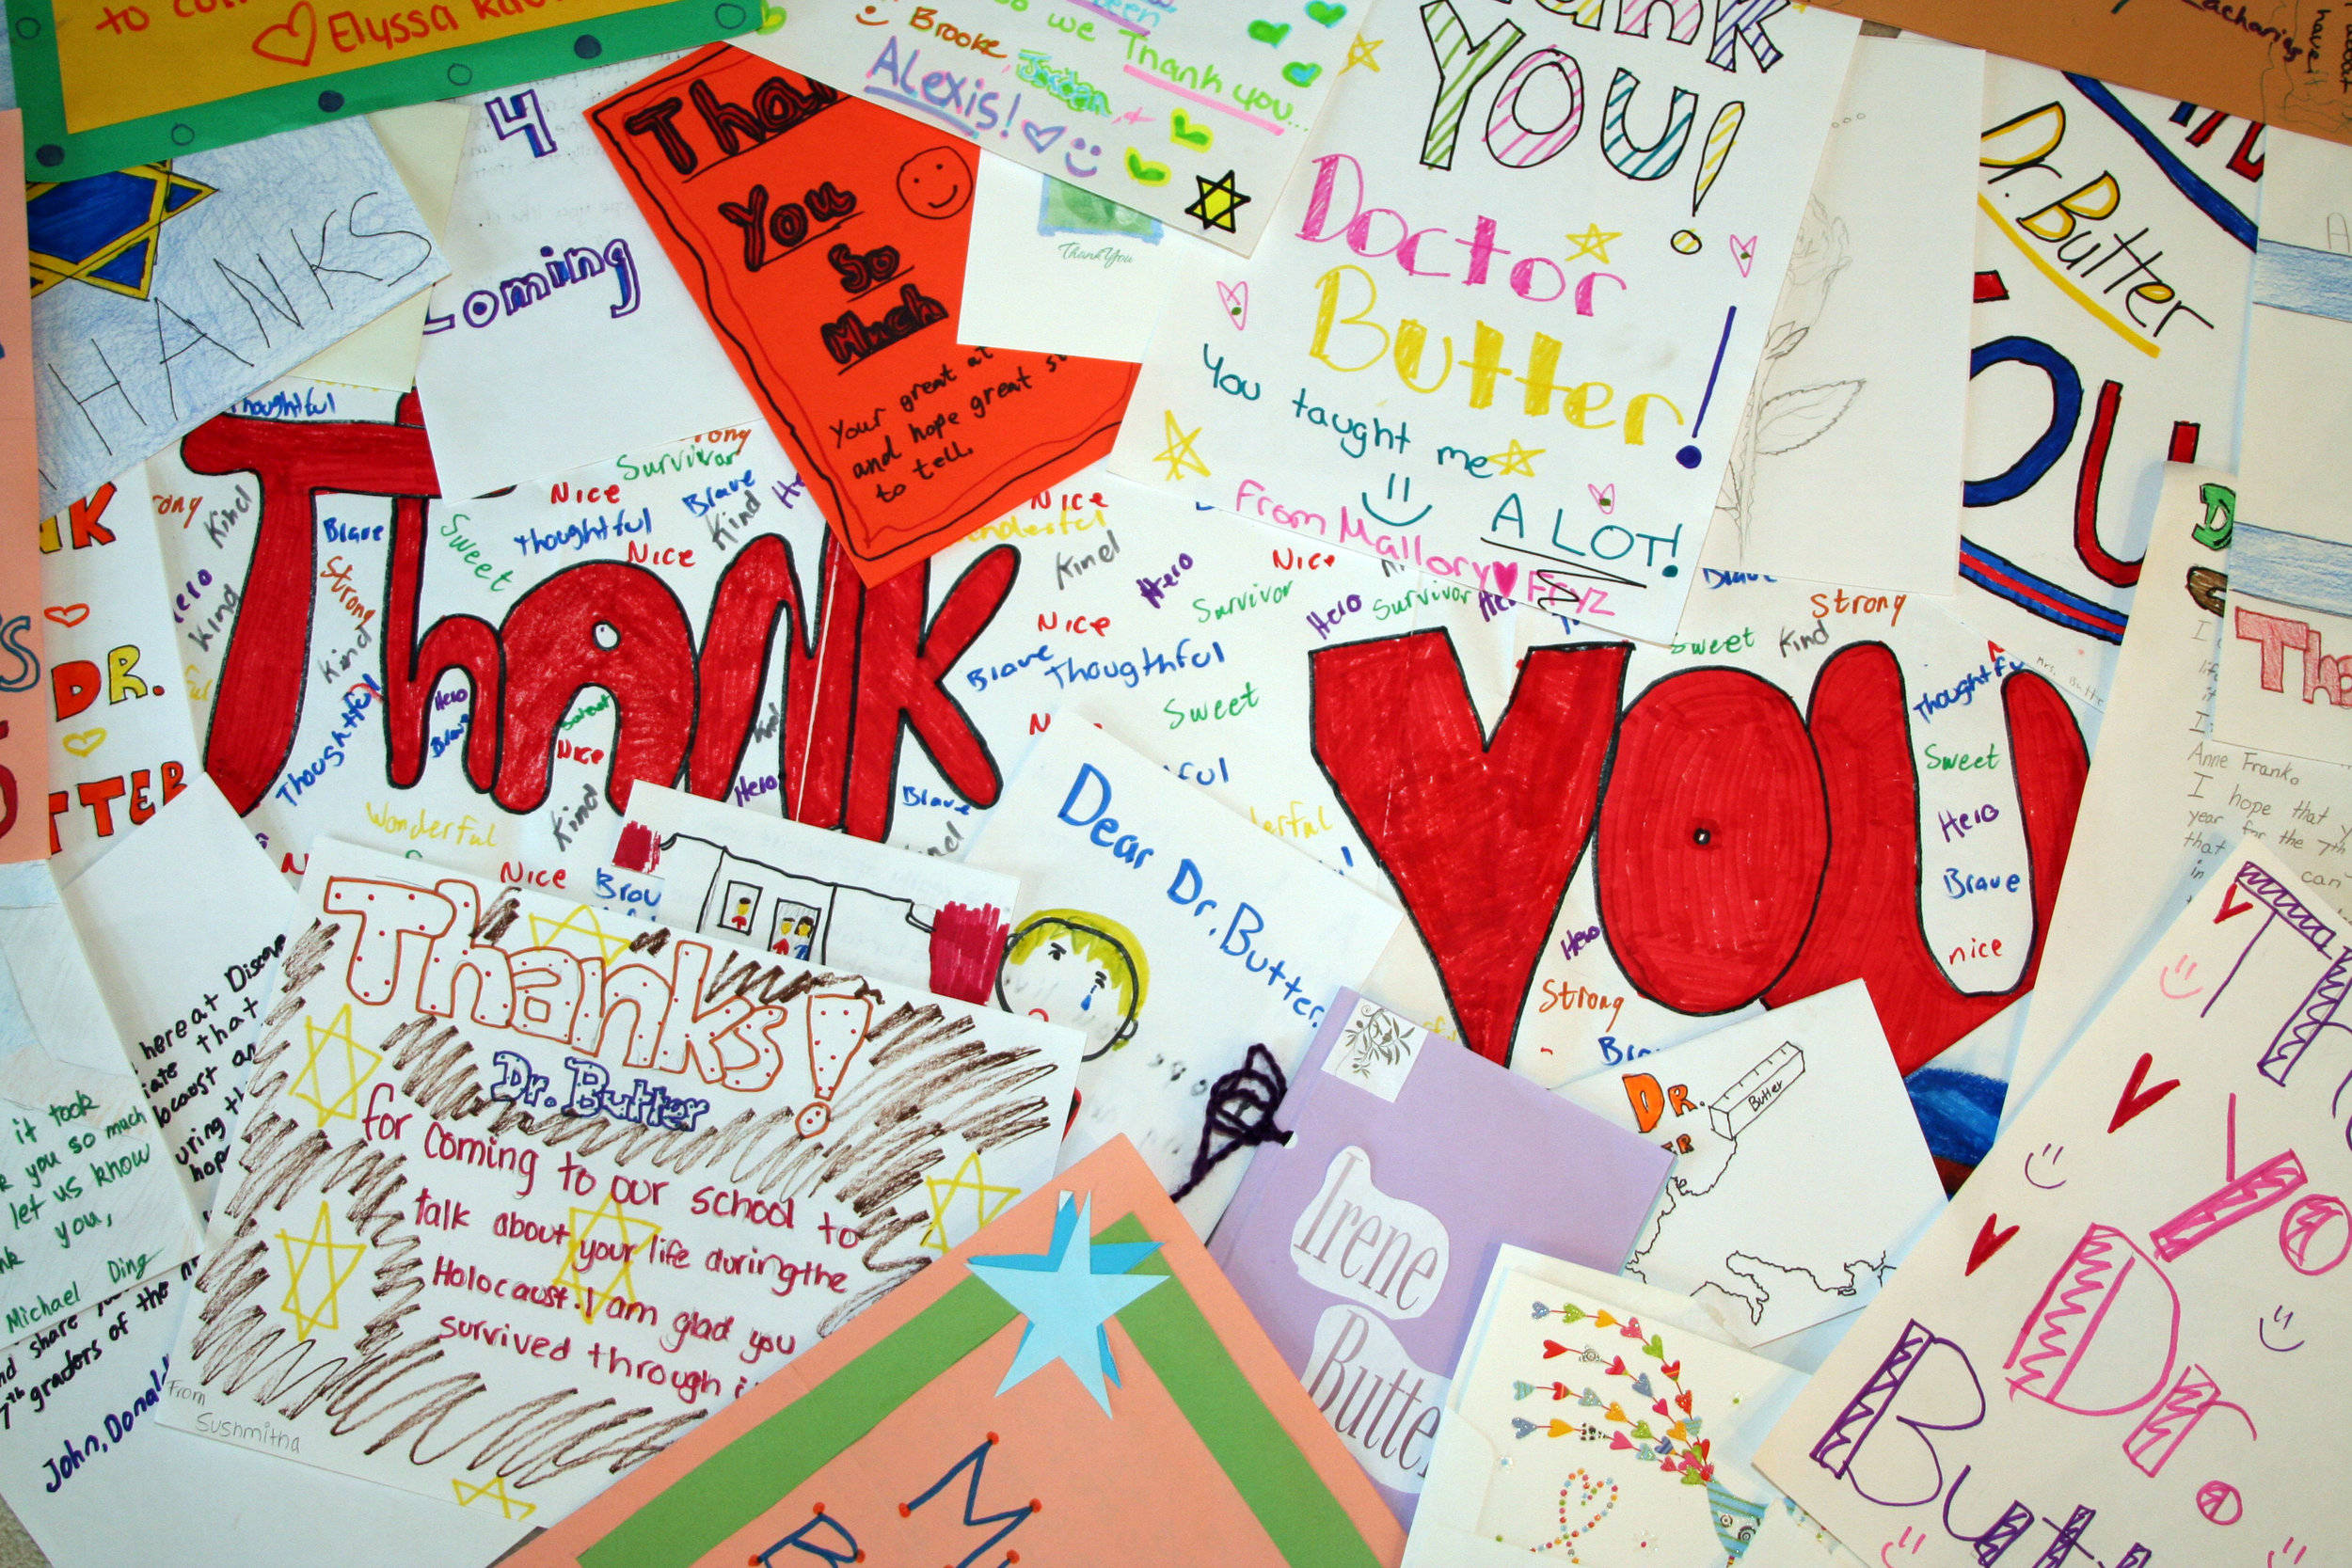 Examples of the hundreds of cards and artwork that Irene receives from students after her talks.